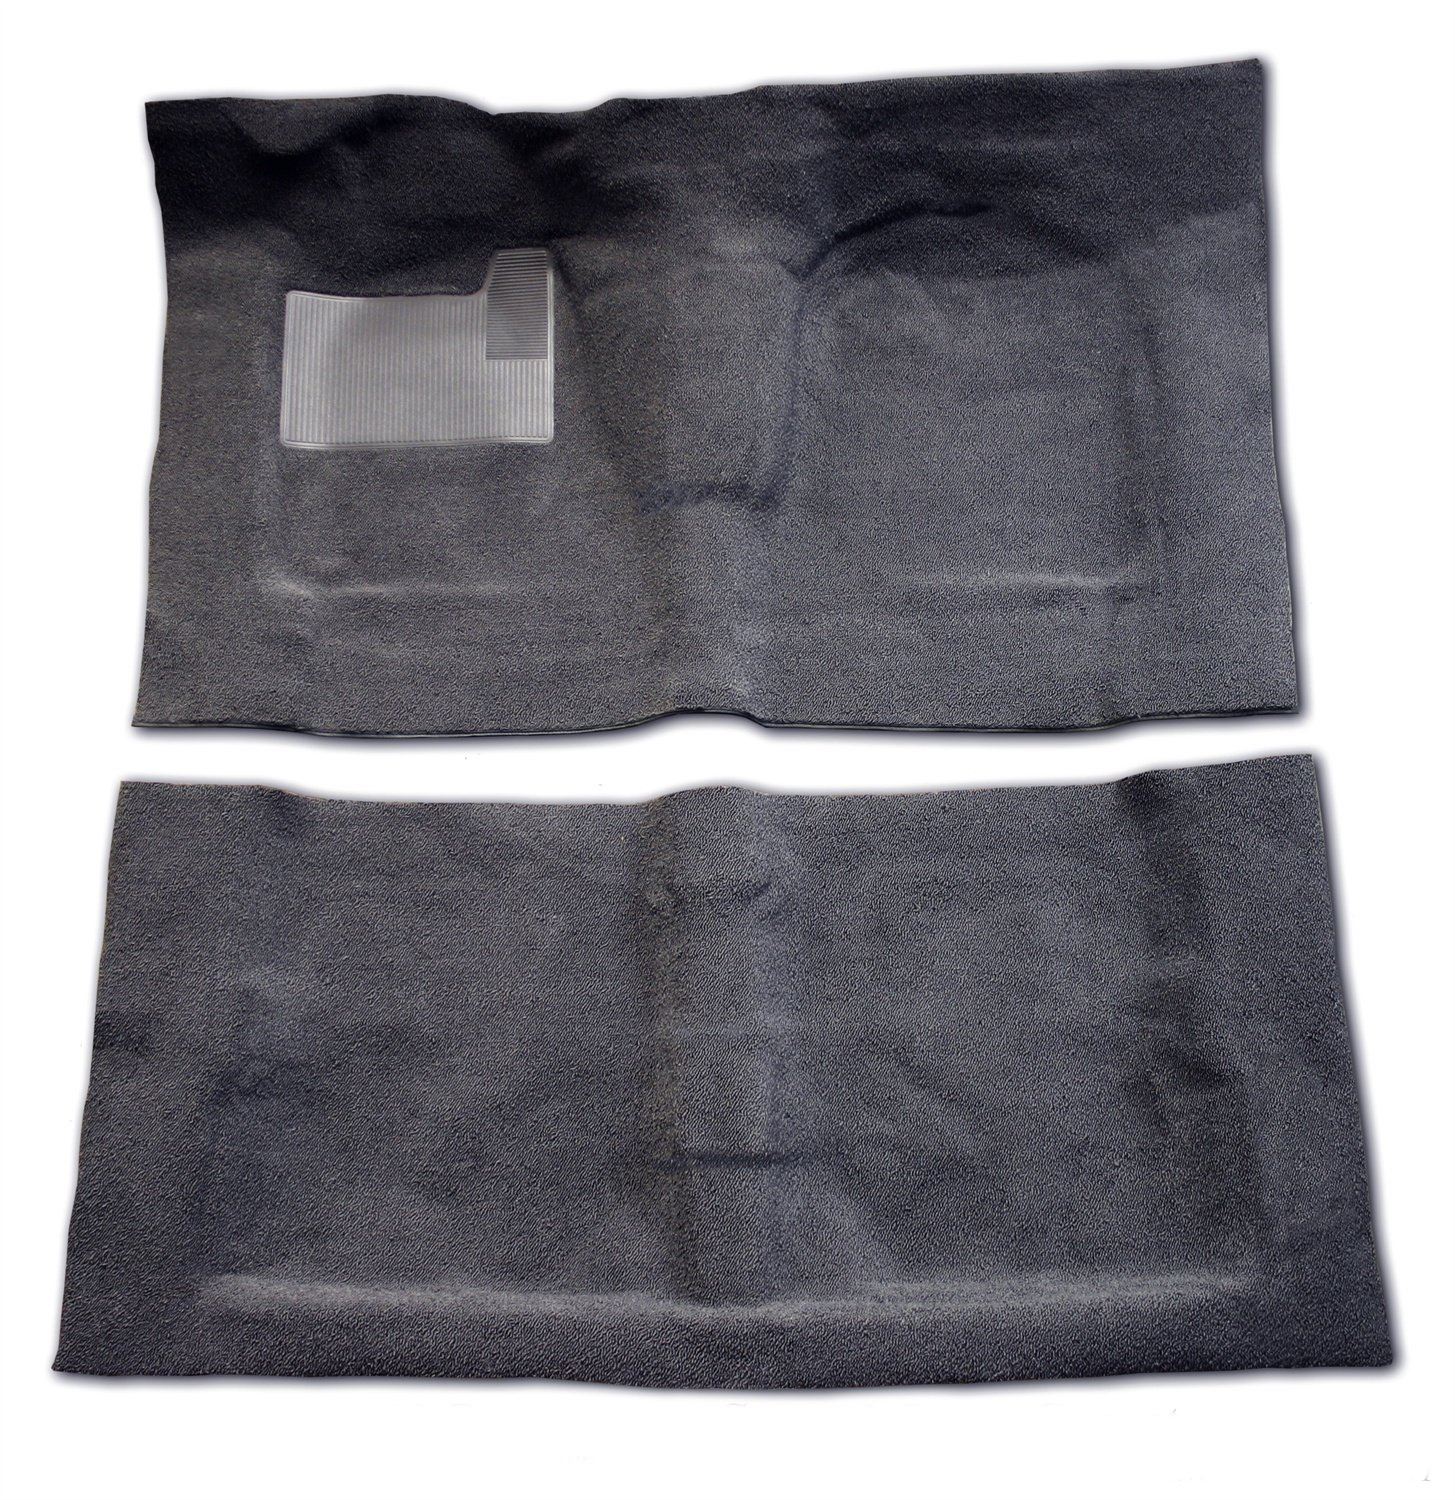 Lund 22513 Floor Covering Charcoal Lund Industries